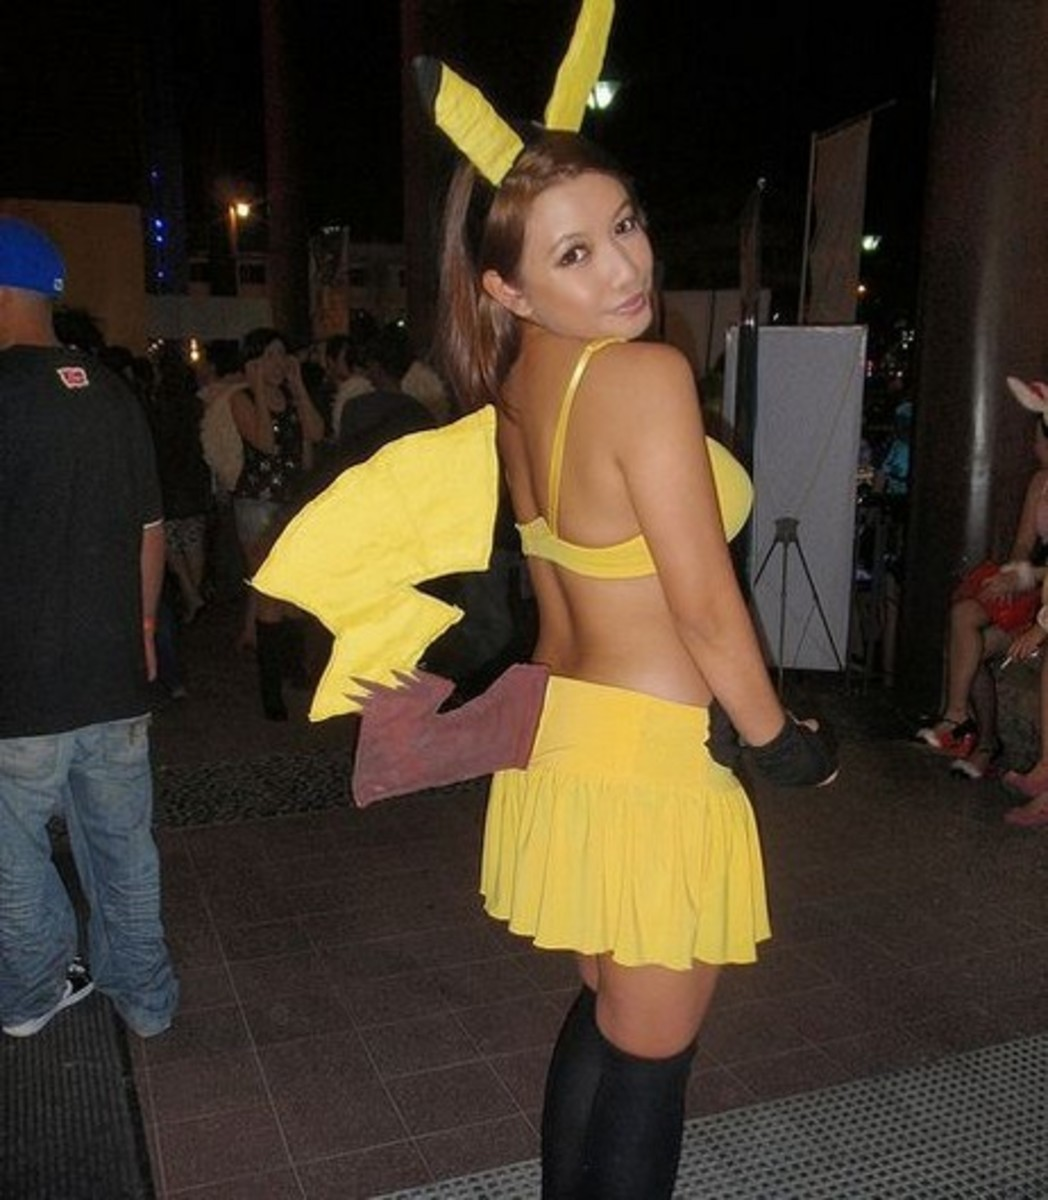 Pikachu Girl using a skirt and felt tail.